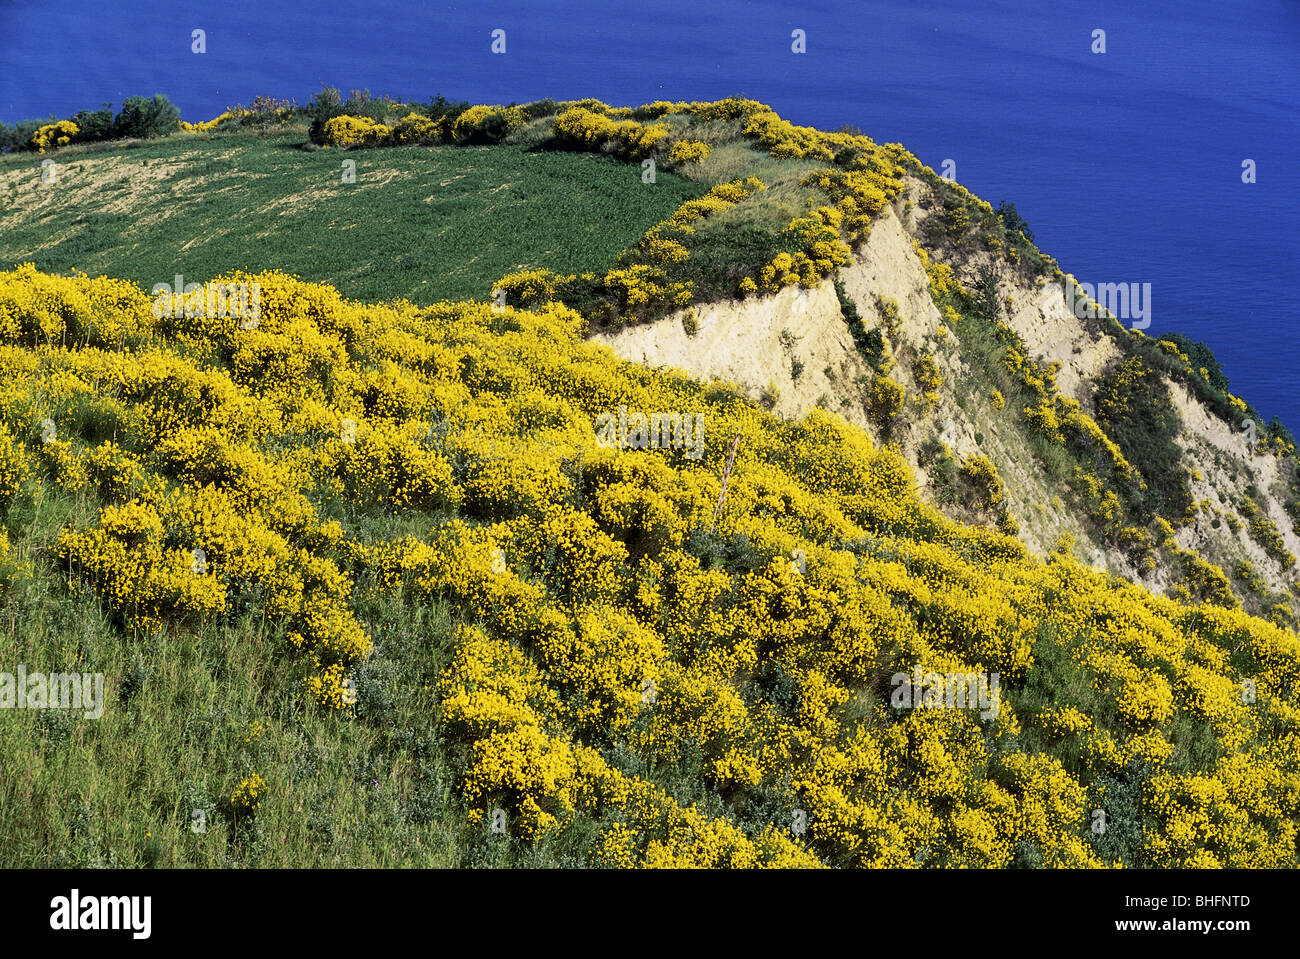 geography / travel, Italy, Marche, landscapes, Strada Panoramica, steep coast with flowering Macchia, near Fiorenzuola, - Stock Image